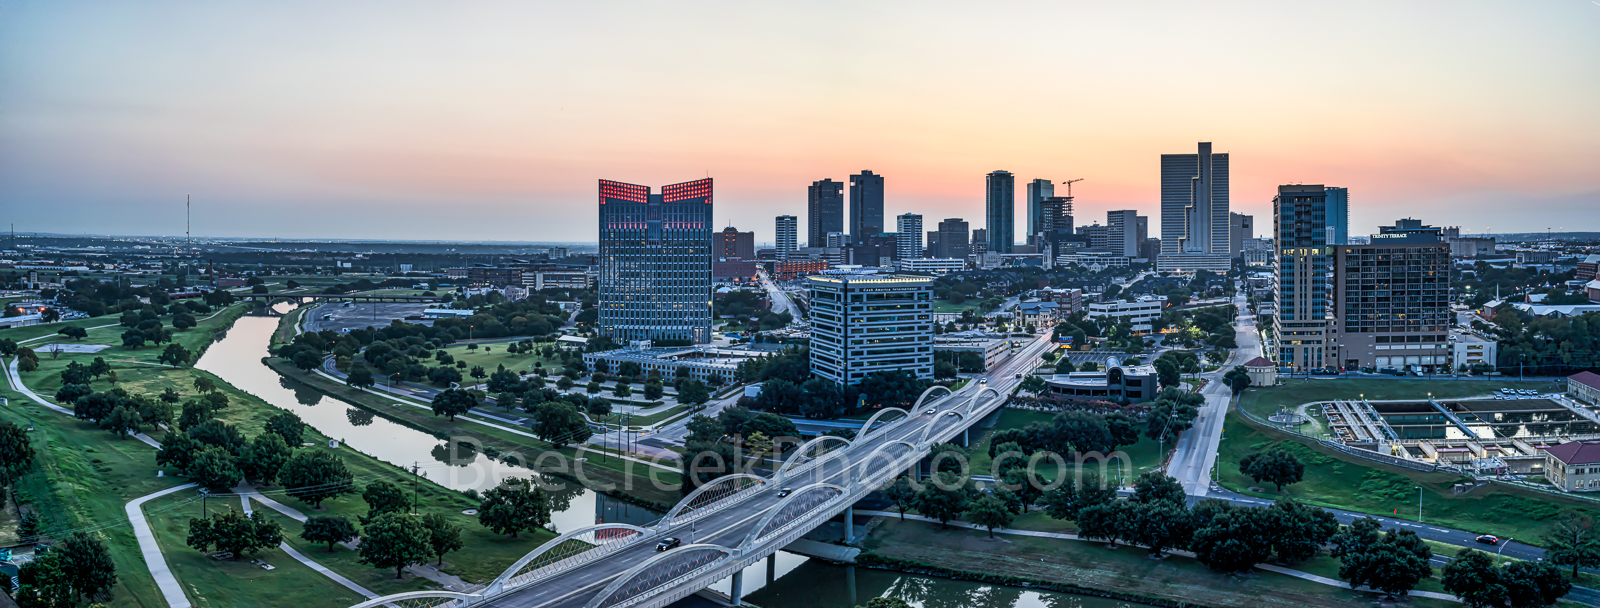 Fort Worth Skyline at Dawn - Early morning in downtown Fort Worth as the sky was lighting up the cityscape with soft...